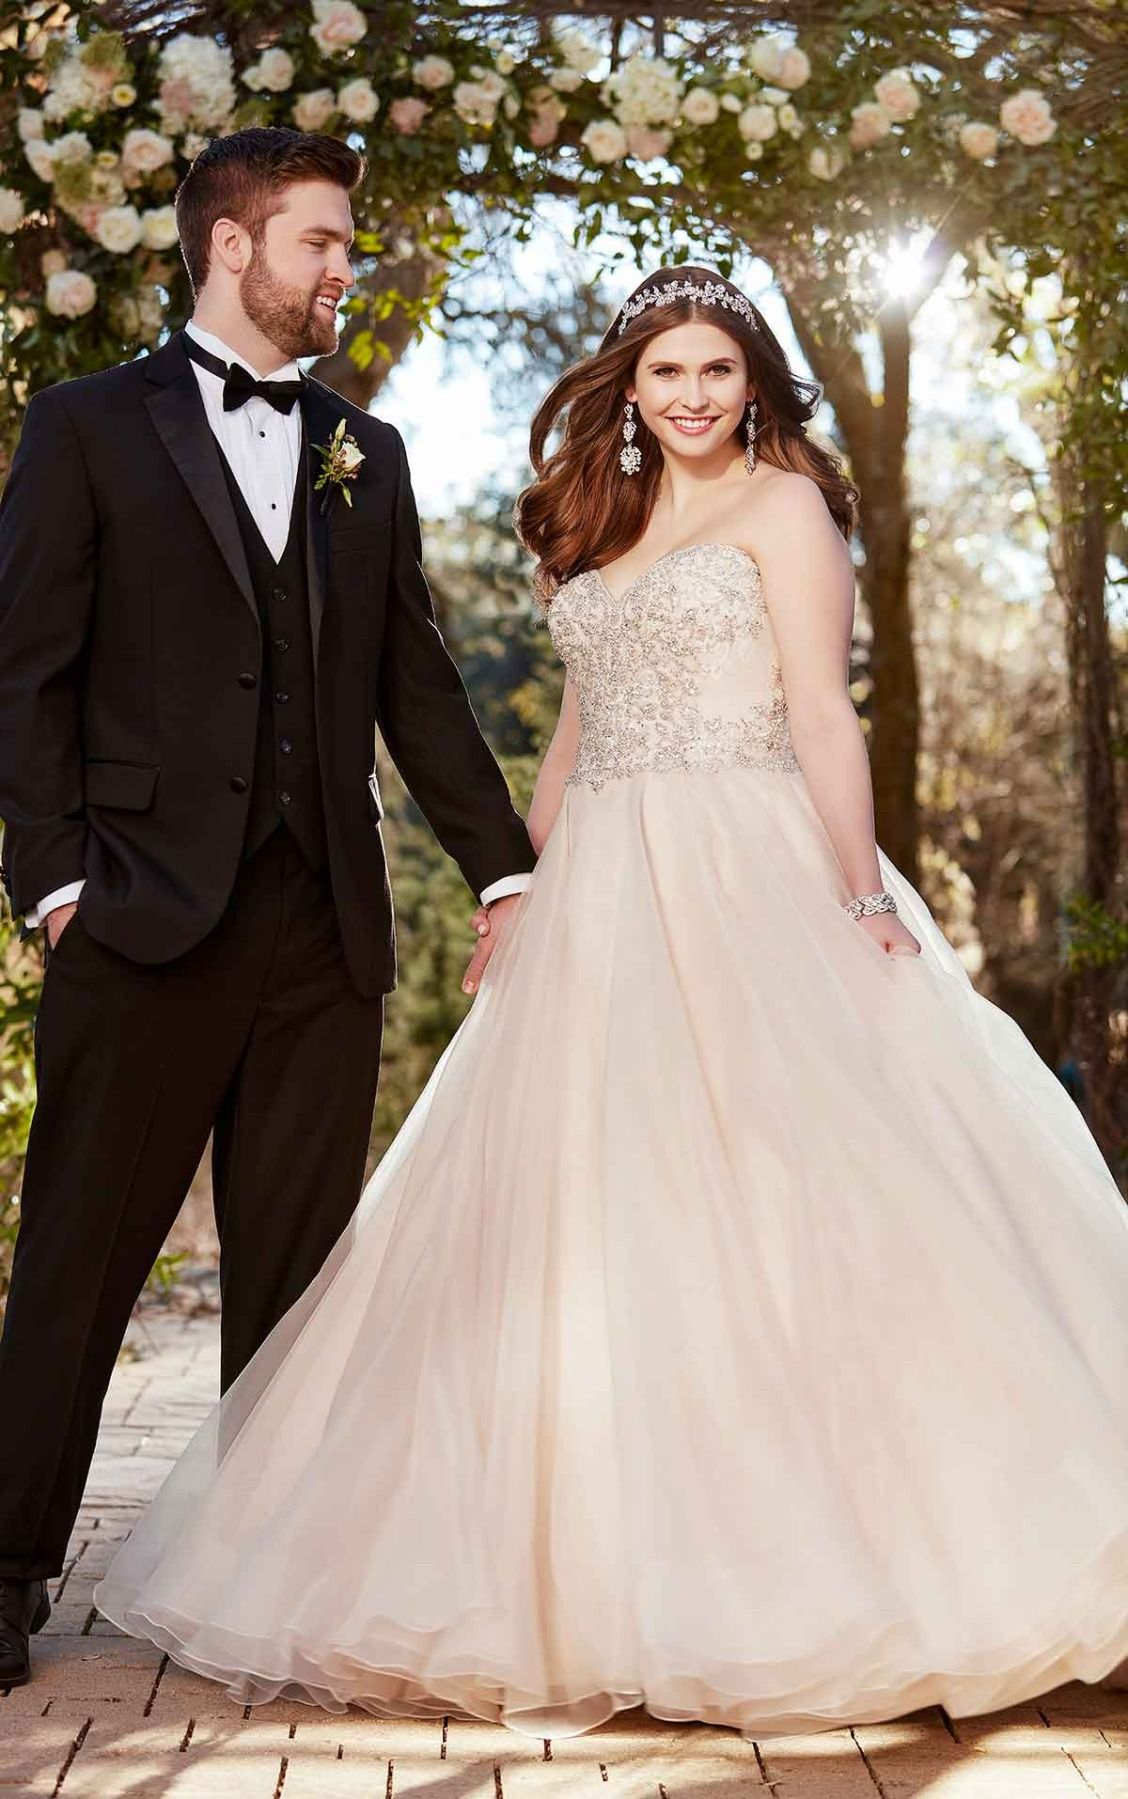 Silver wedding dresses plus size  Plus Size Strapless Fit and Flare Wedding Dress  Pinterest  Ball